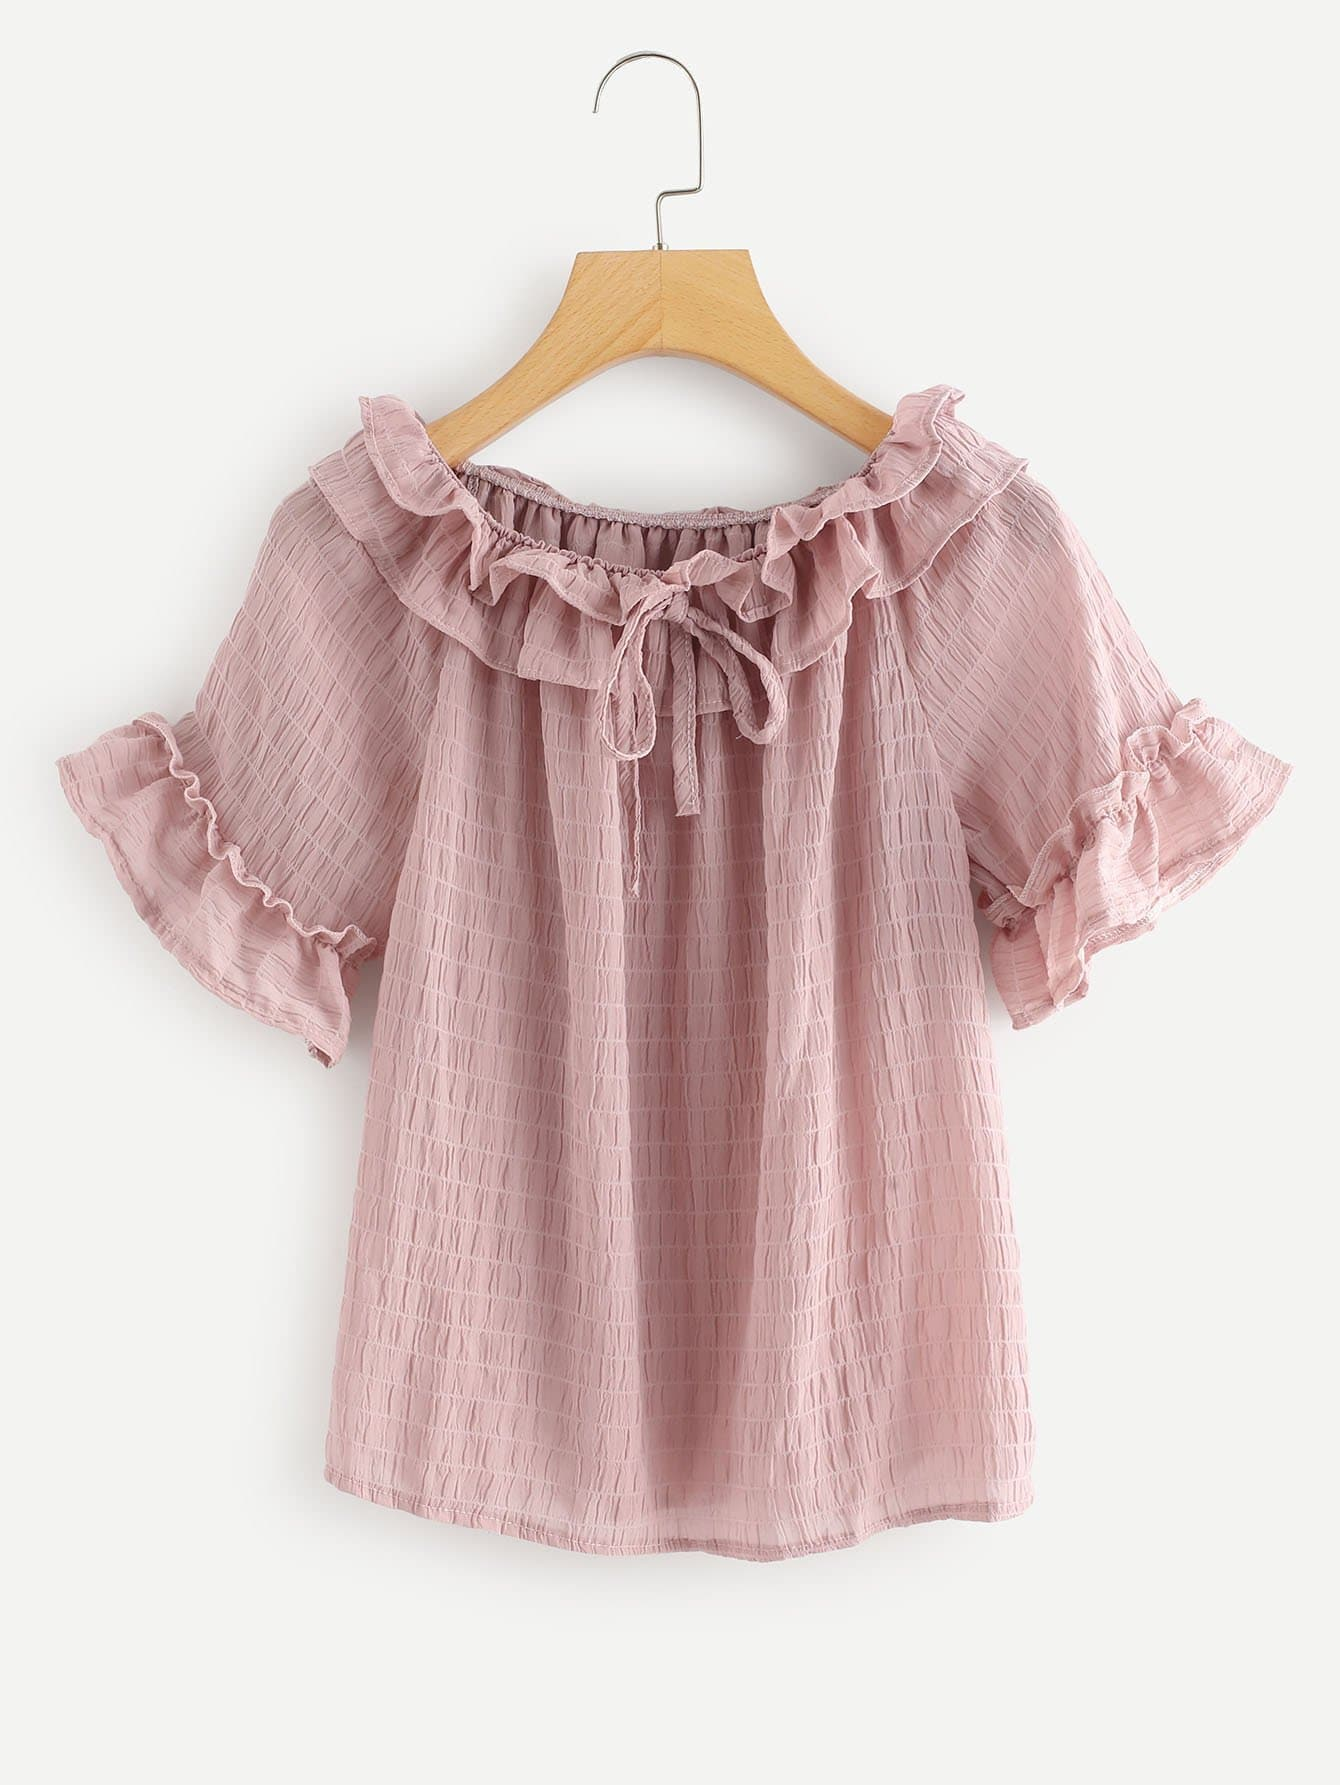 Tiered Layer Knot Neck Ruffle Sleeve Top tiered layer ruffle jacket